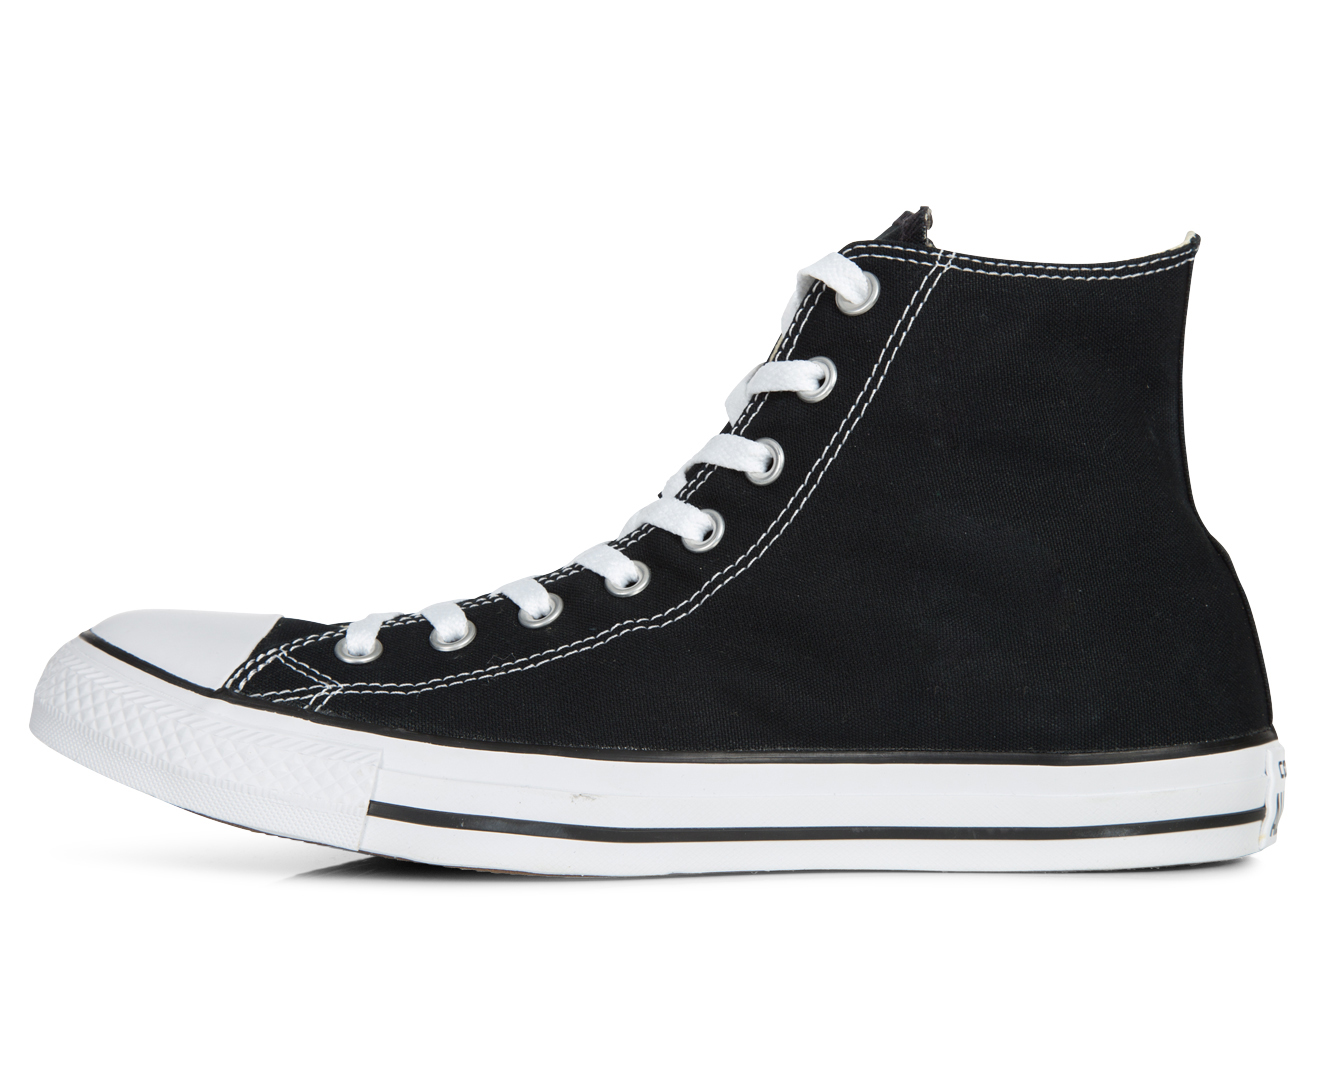 7ce4a21930bd Converse Chuck Taylor Unisex All Star High Top Shoe - Black